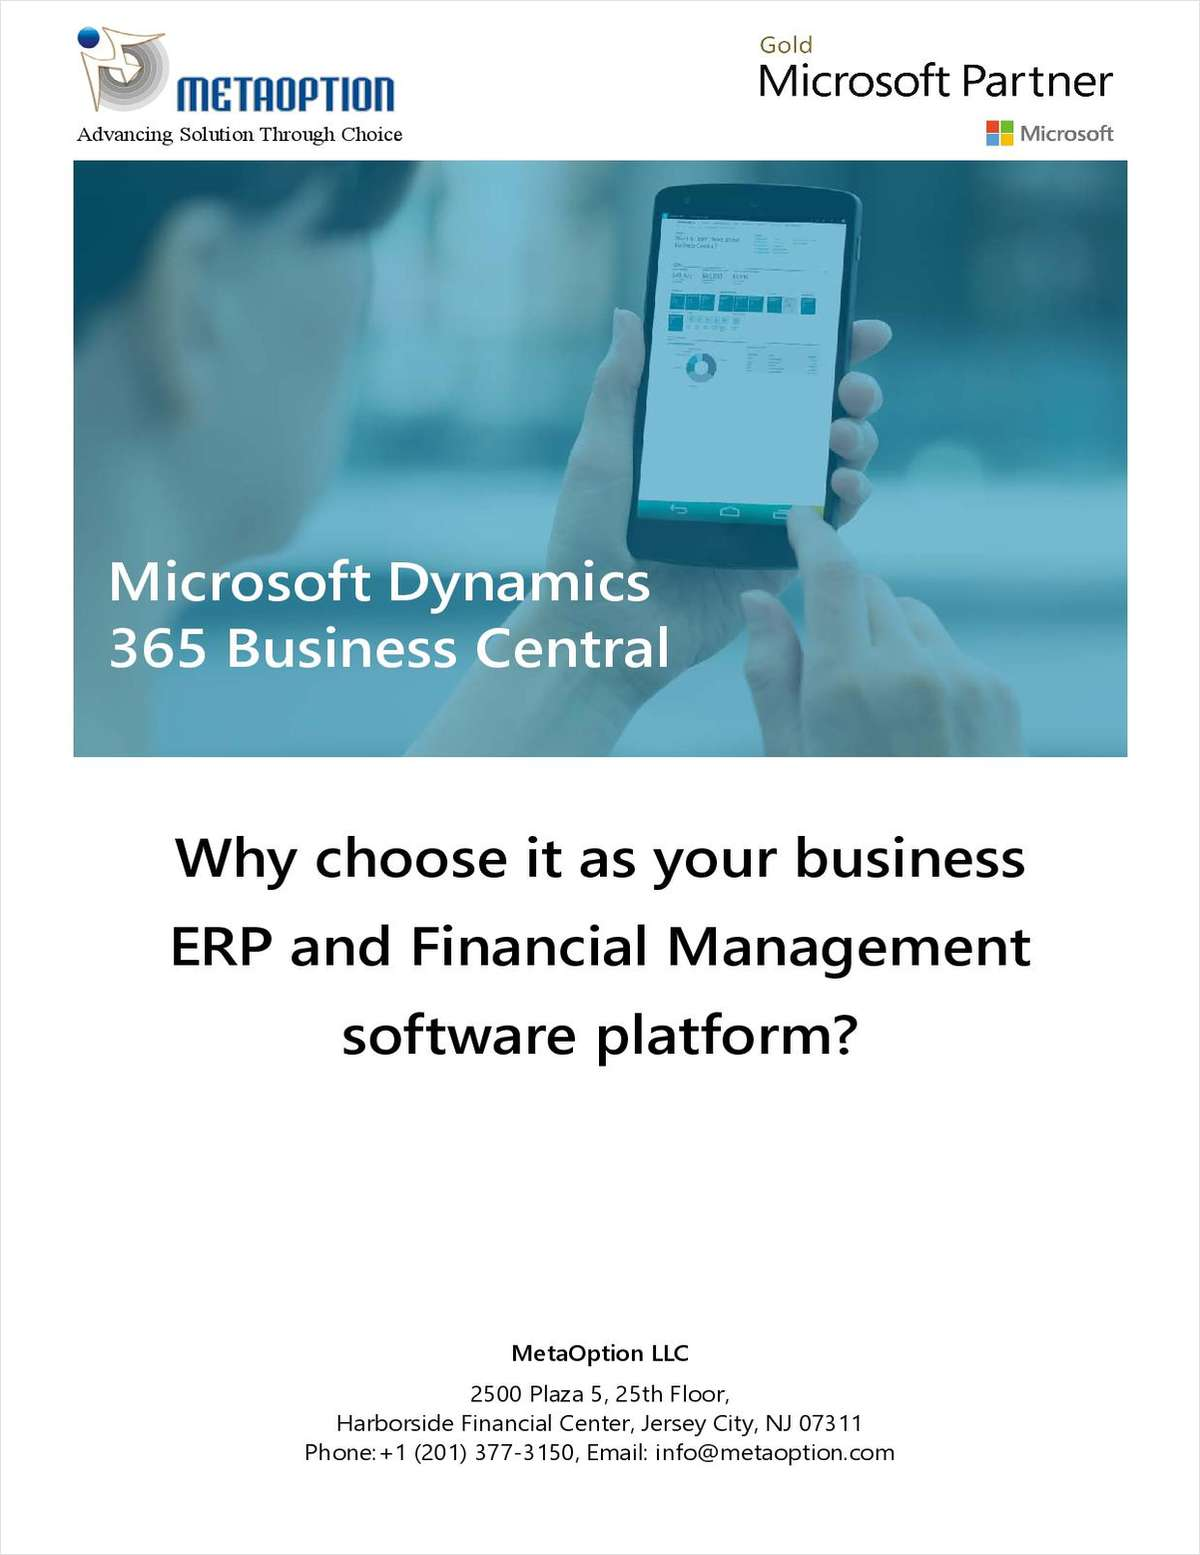 Why Choose Dynamics 365 Business Central as Your Business ERP and Financial Management Software Platform for Manufacturers?